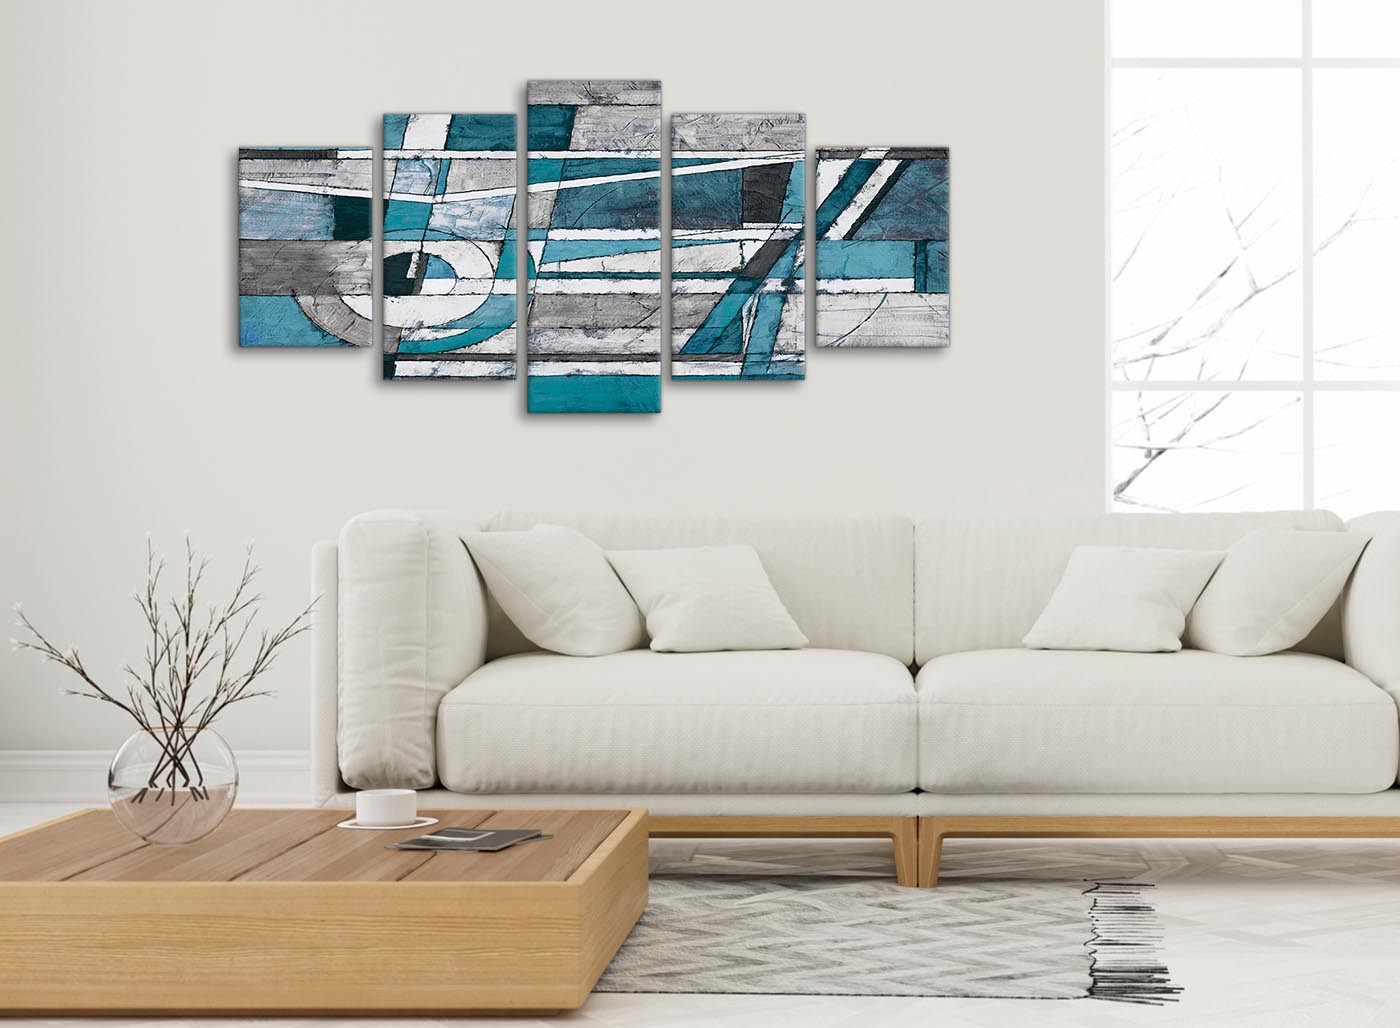 Canvas Wall Art Decor: 5 Panel Teal Grey Painting Abstract Bedroom Canvas Wall